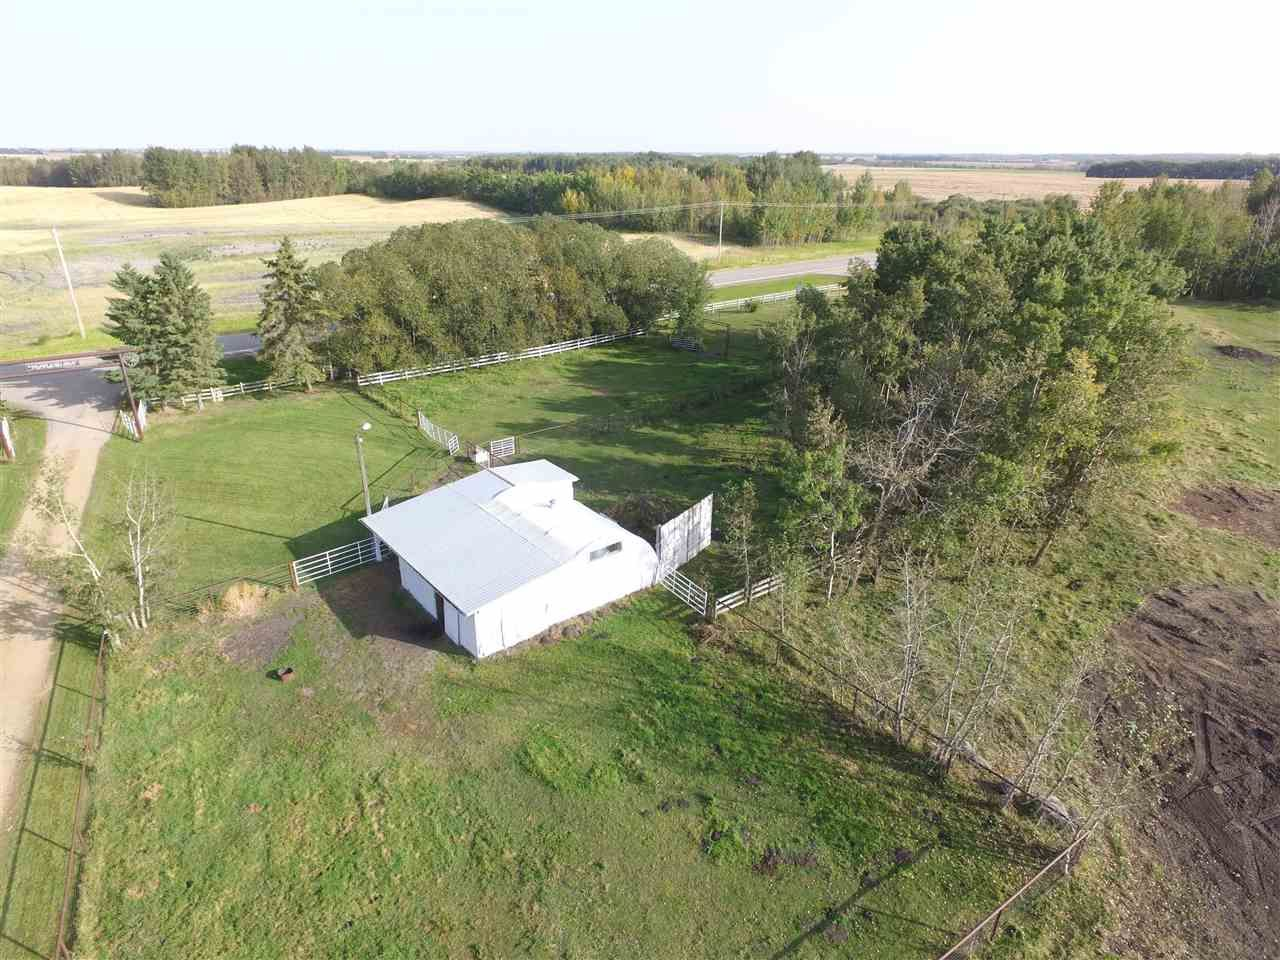 Photo 15: Photos: 472050A Hwy 814: Rural Wetaskiwin County House for sale : MLS®# E4213442